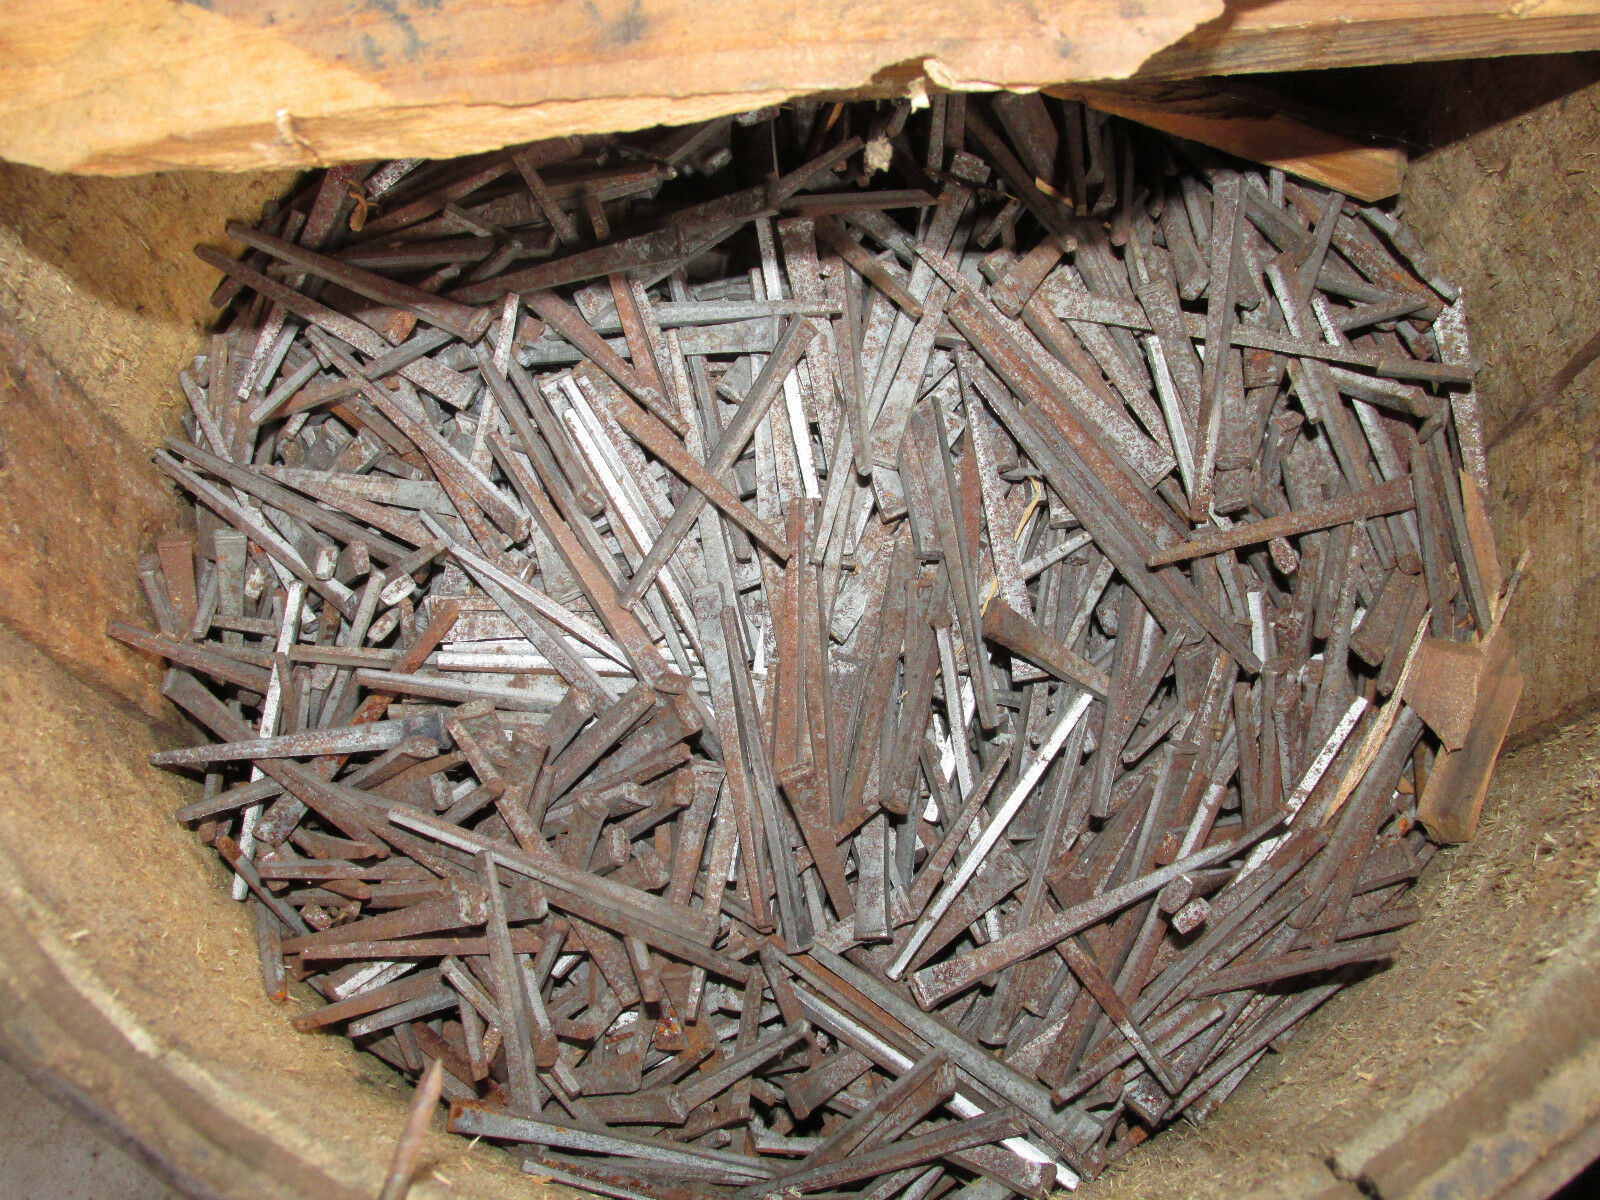 "Lot of 300 ANTIQUE SQUARE CUT 2 1/2"" hand cut NAILS New Old Stock NOS Barn Find"